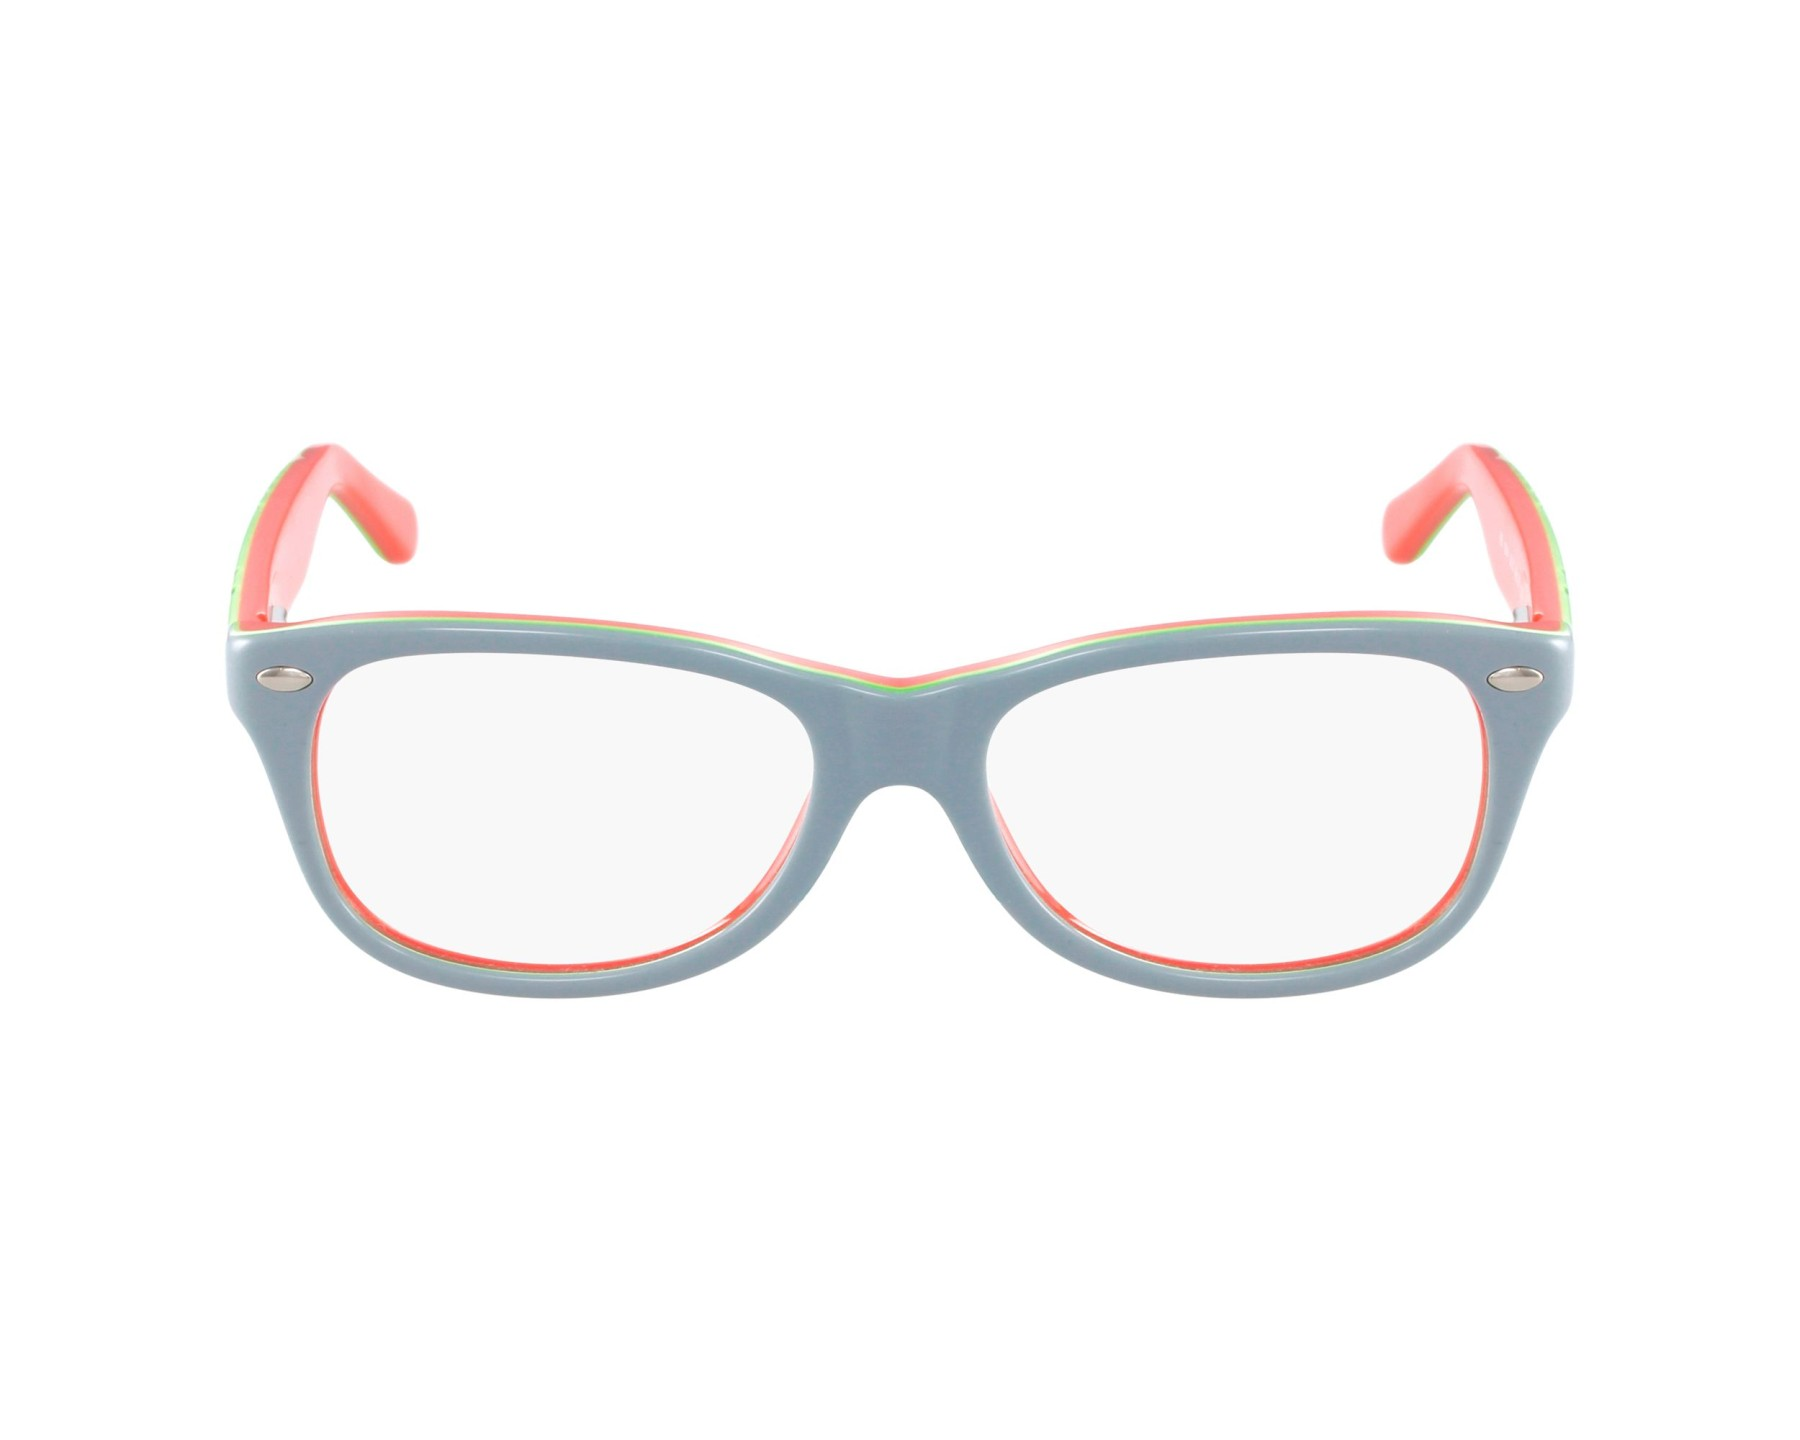 6295512f31 Ray Ban Junior Eyeglasses Blue White Red « Heritage Malta